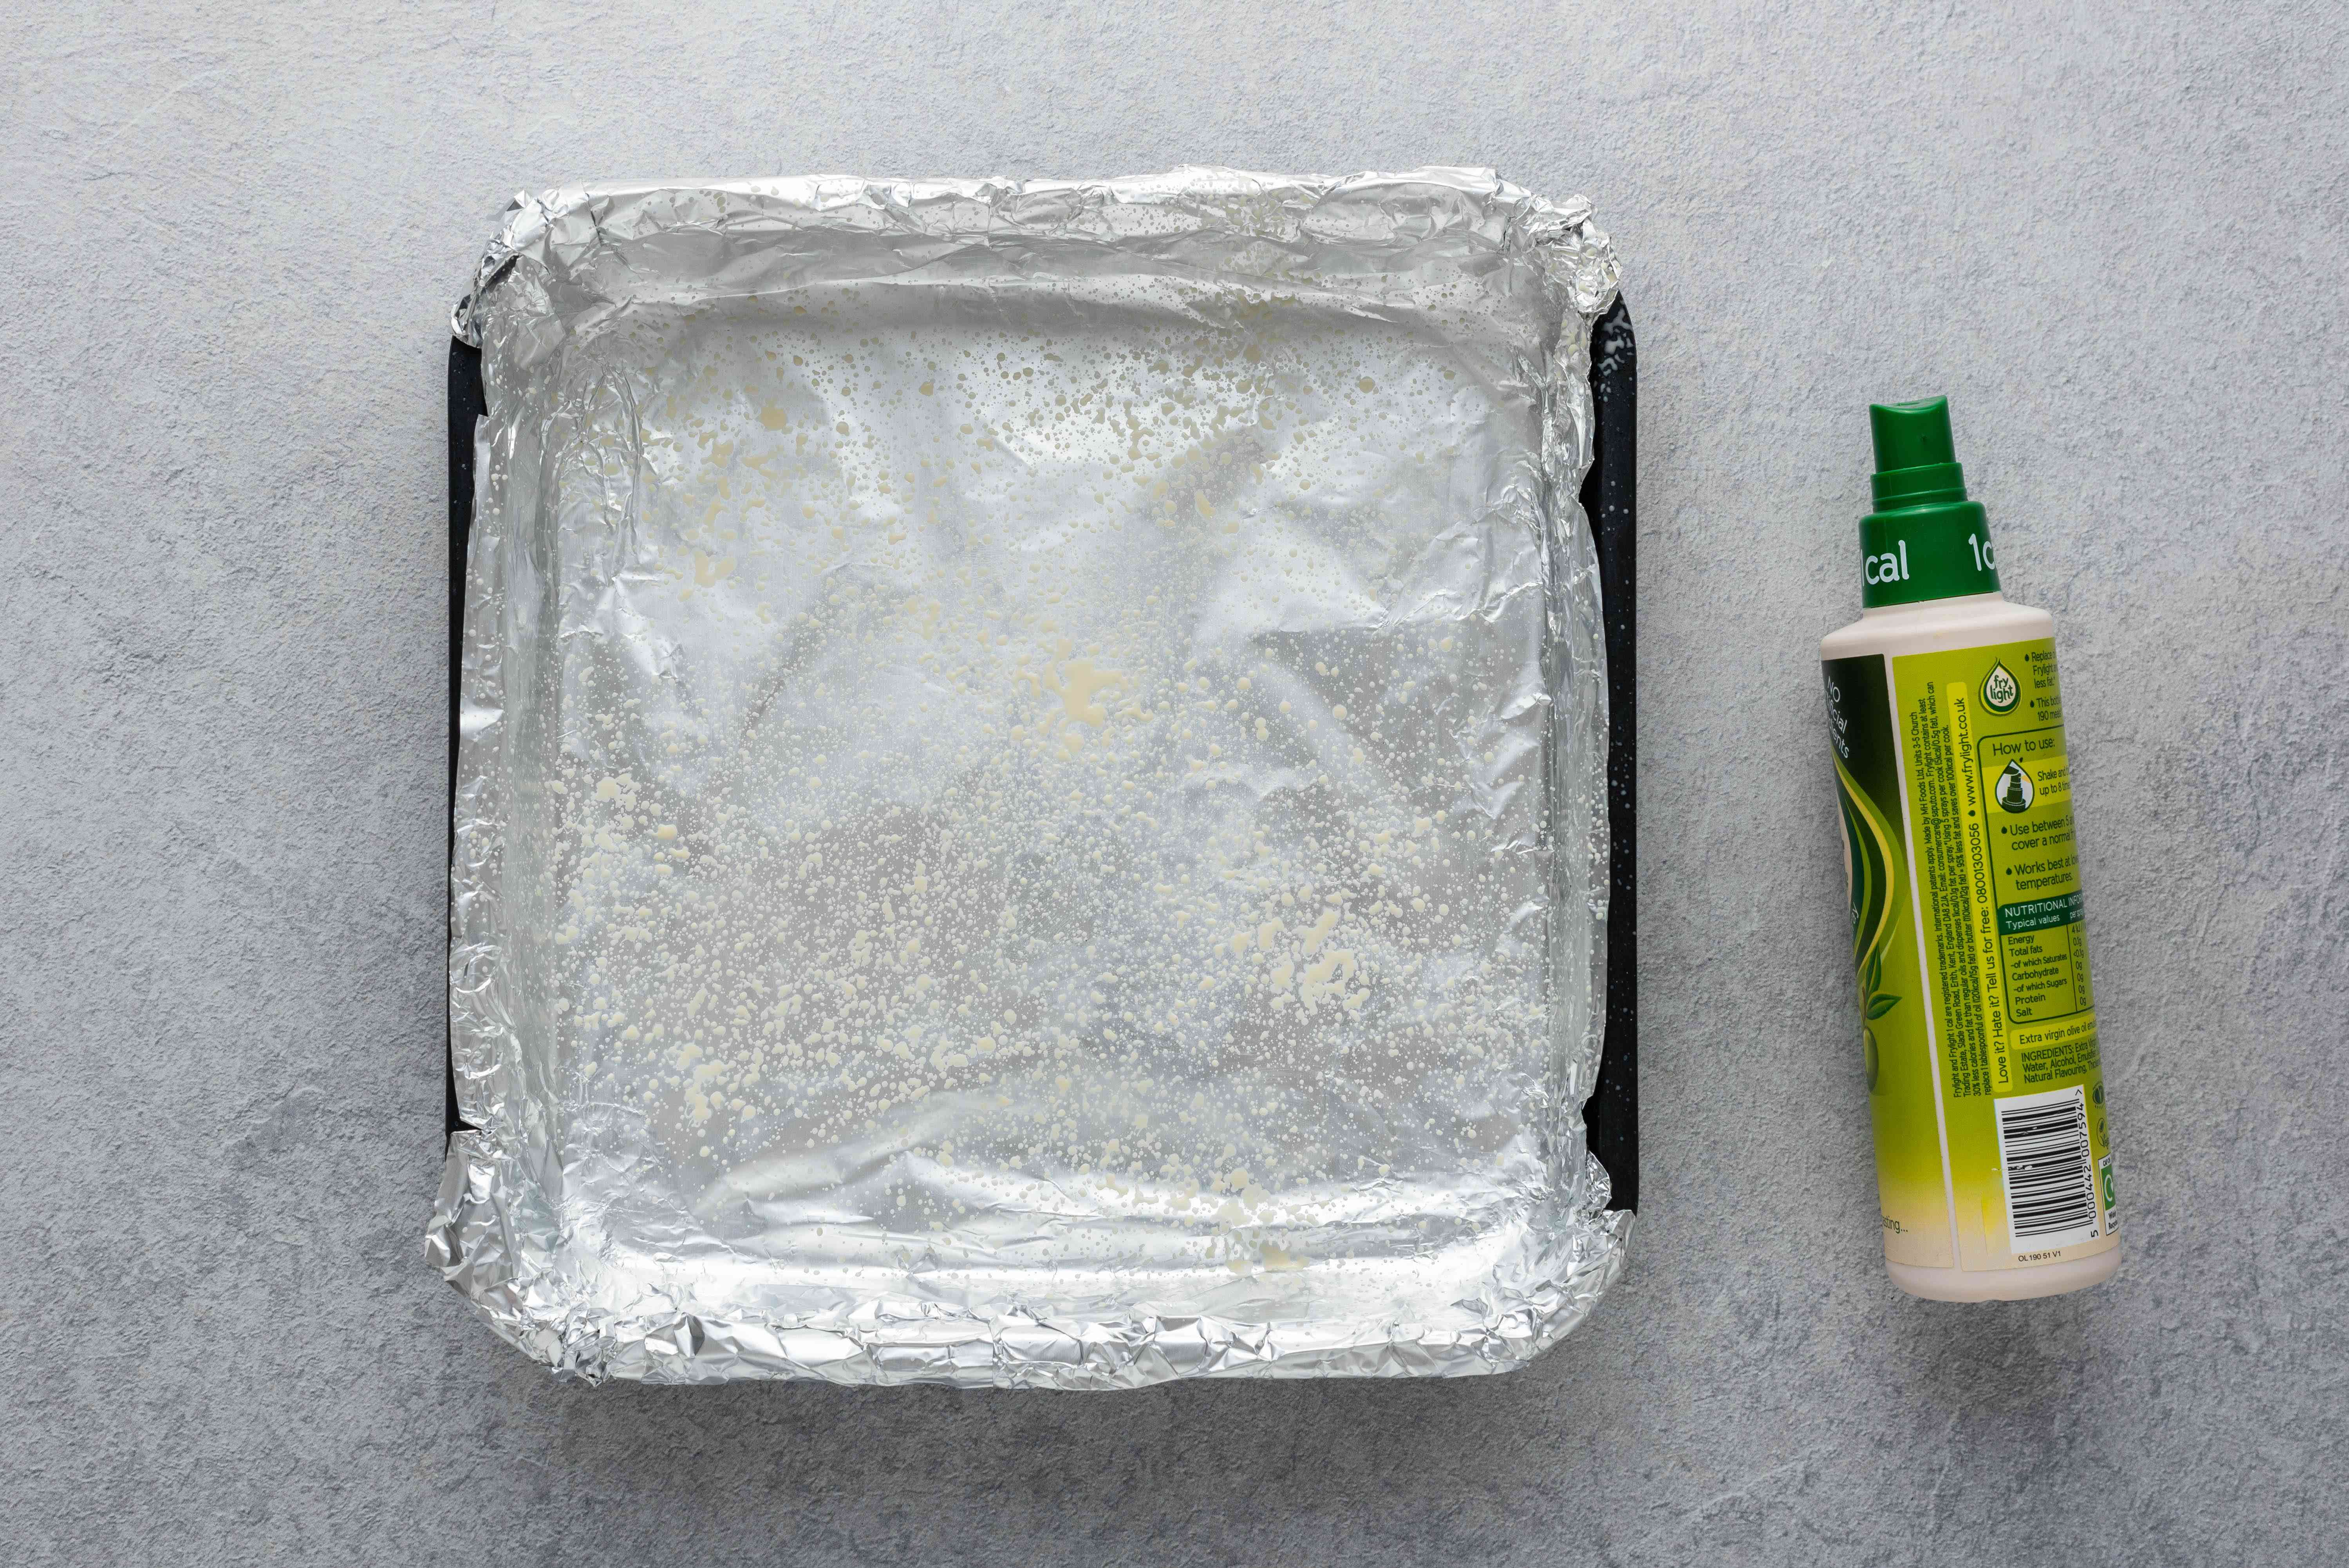 greased aluminum foil lined baking pan